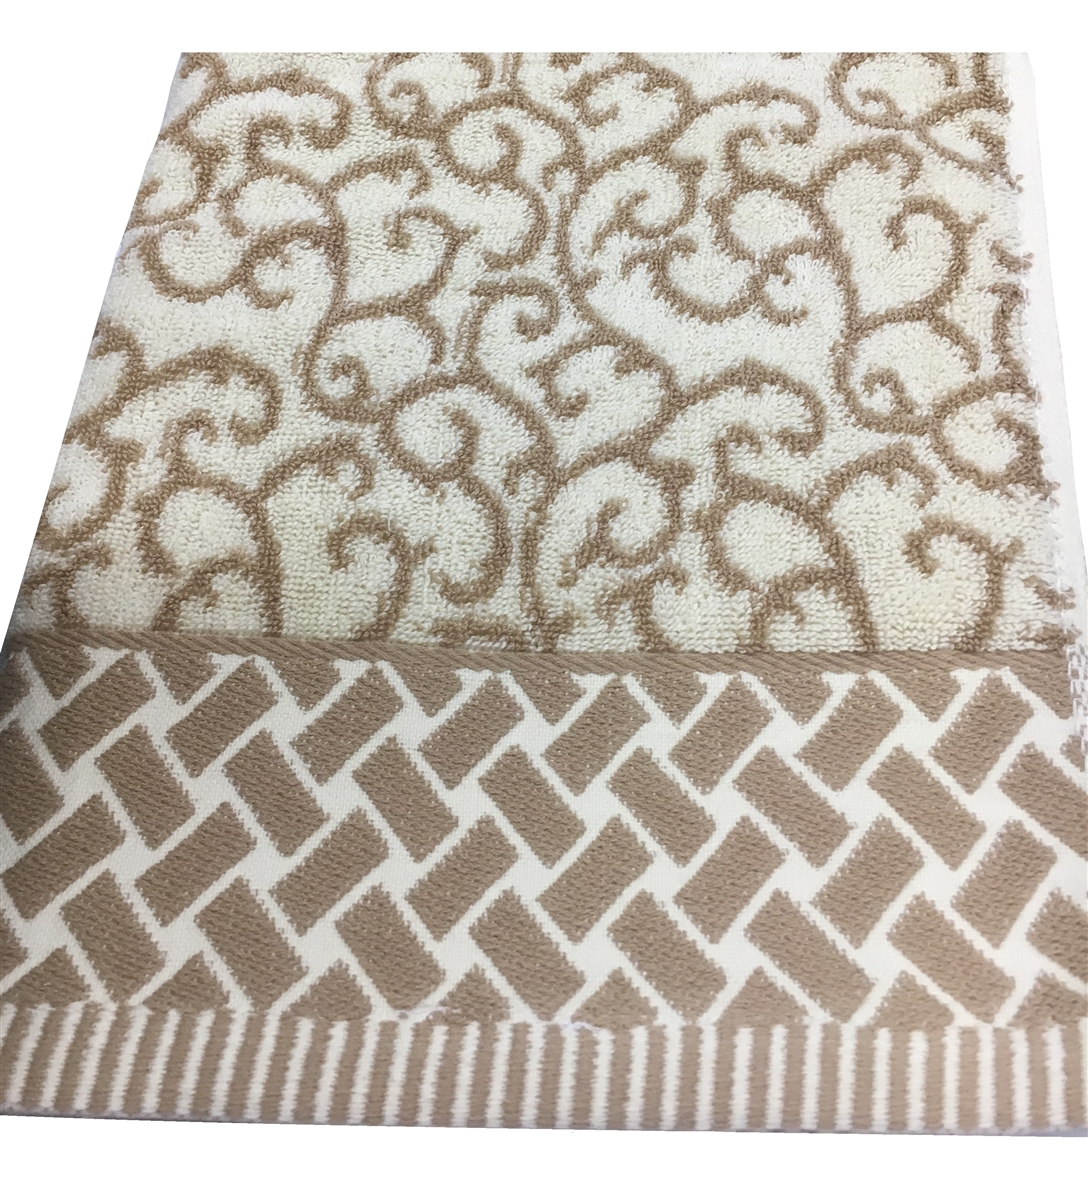 Swivel 100% Cotton Hand Towel in Taupe Ivory and Gold